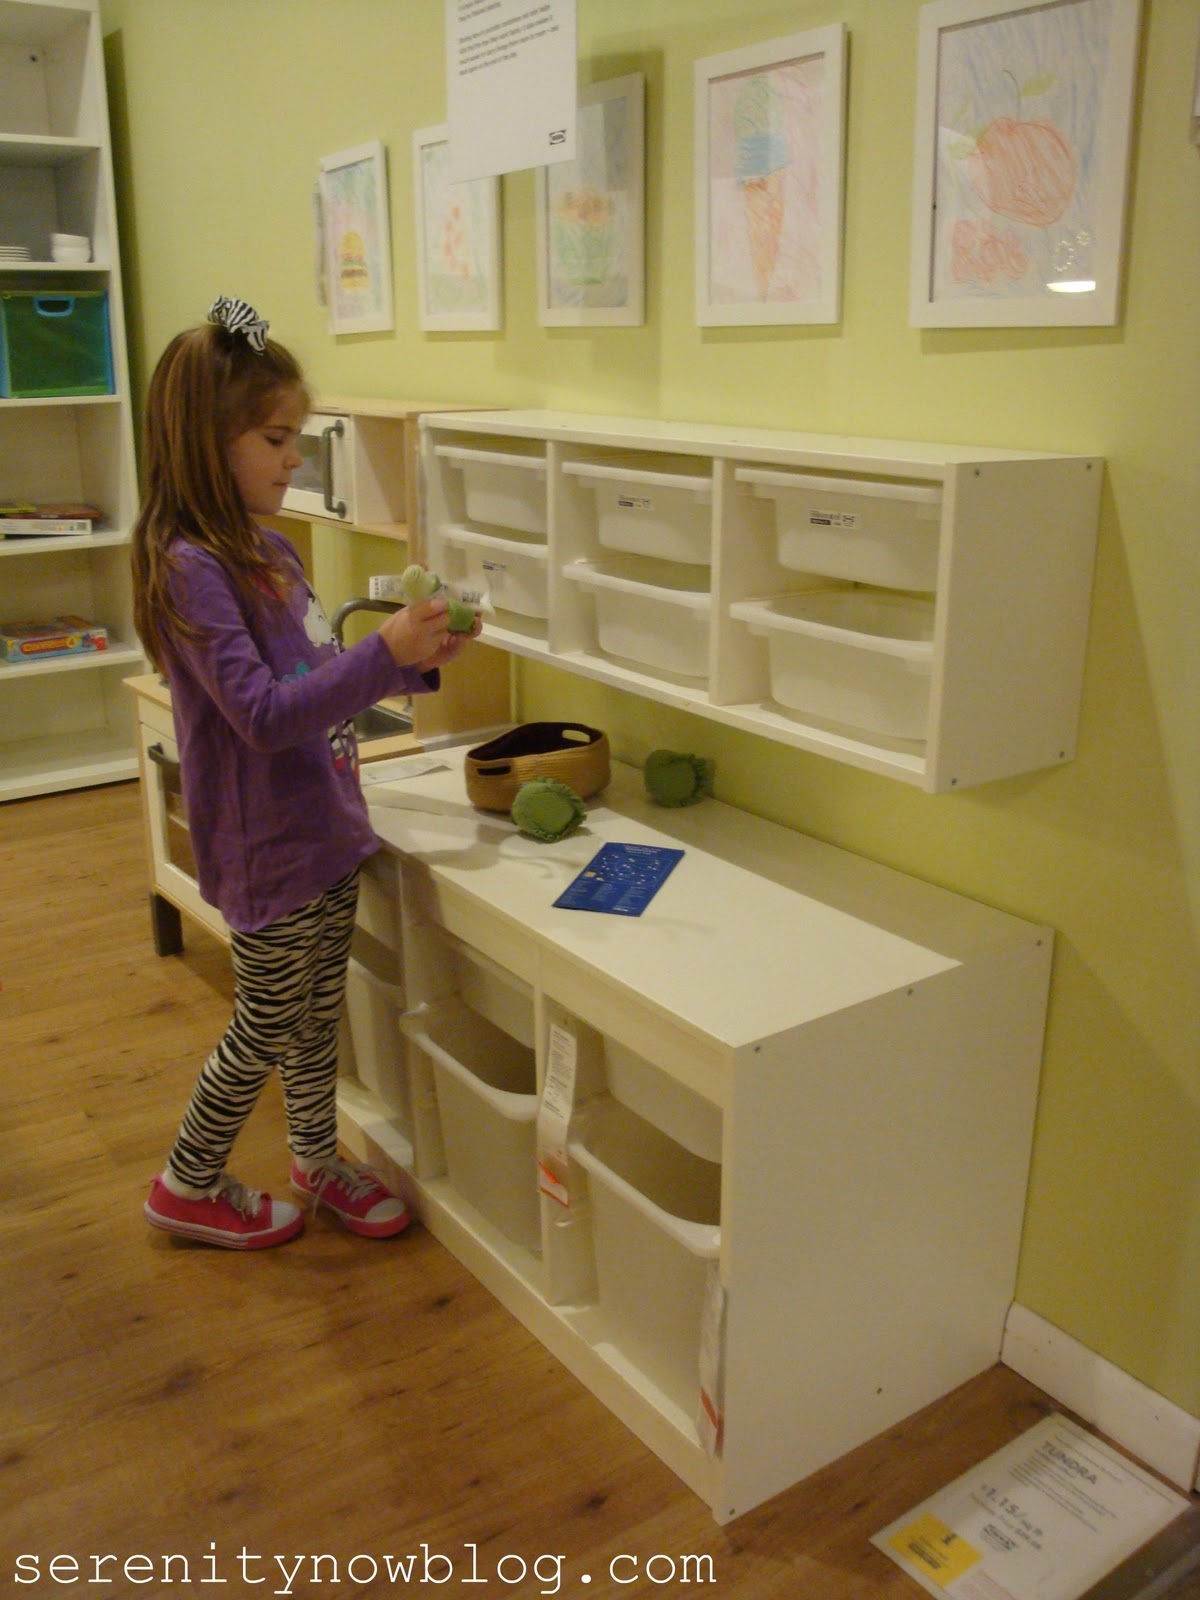 Playroom For Kids With Ikea Toy Storage On Wall And Another On Floor With  Wooden Floor